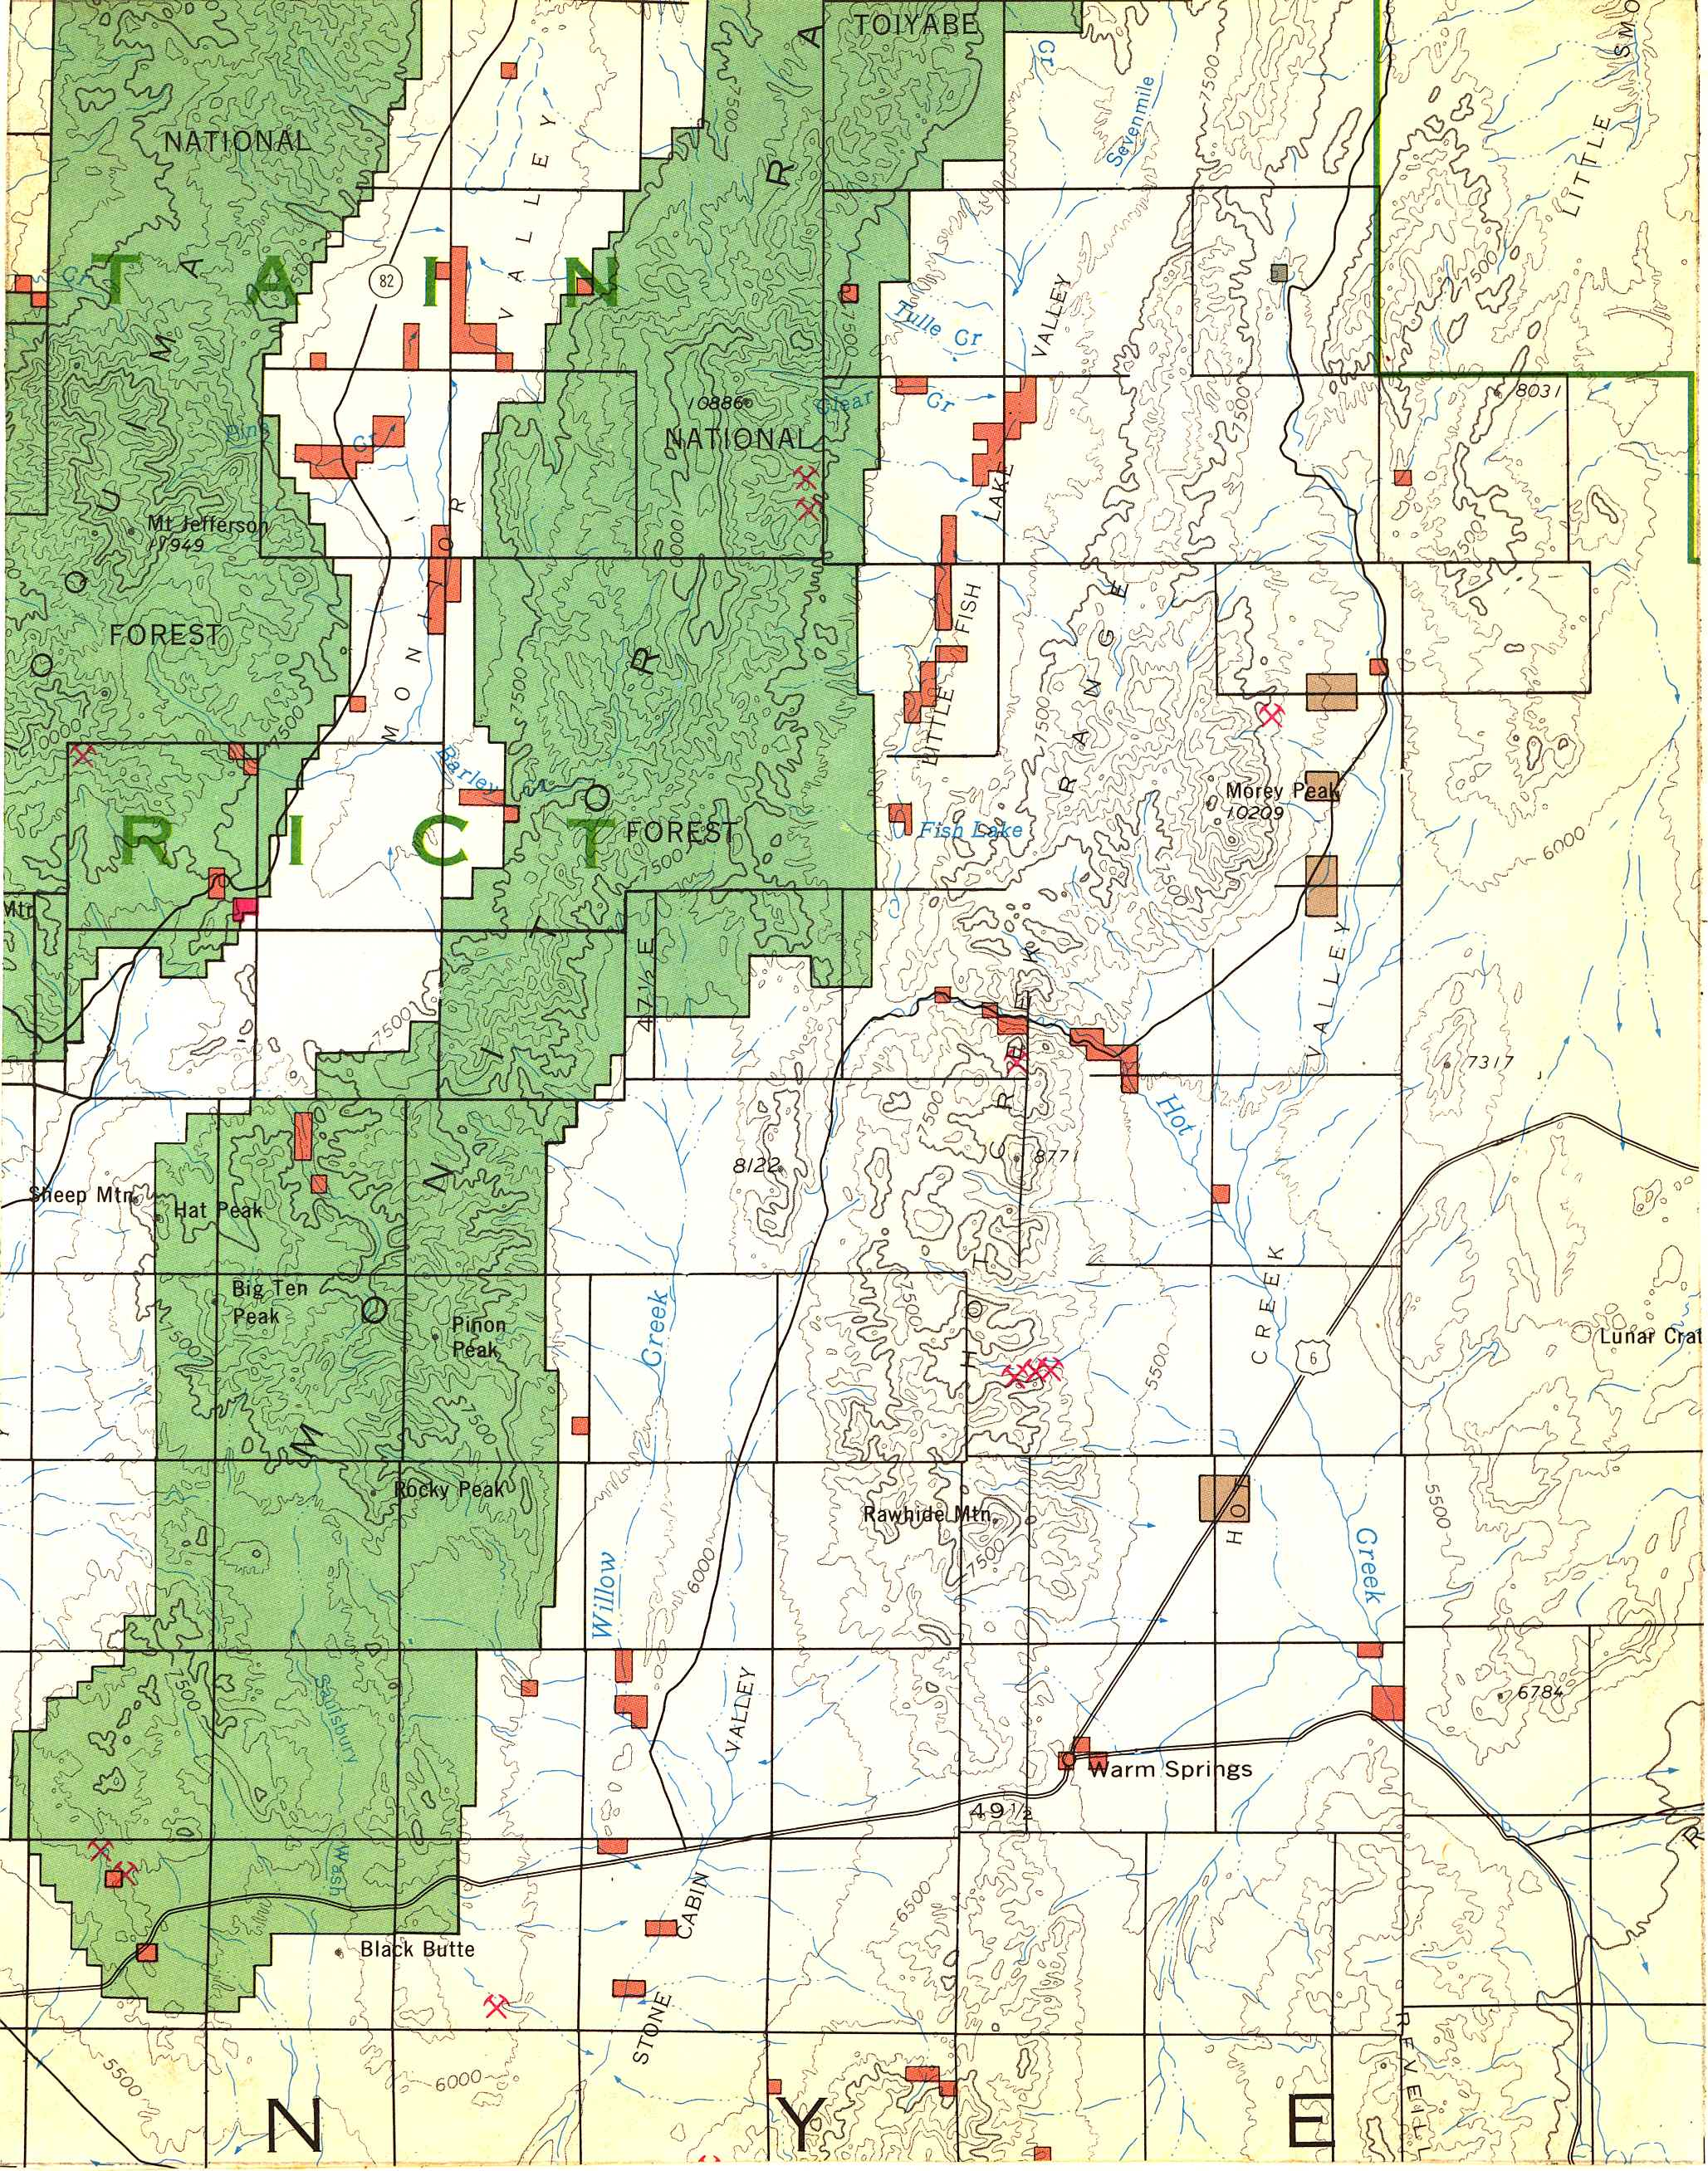 Map [2] 38:116 - Warm Springs - 1972